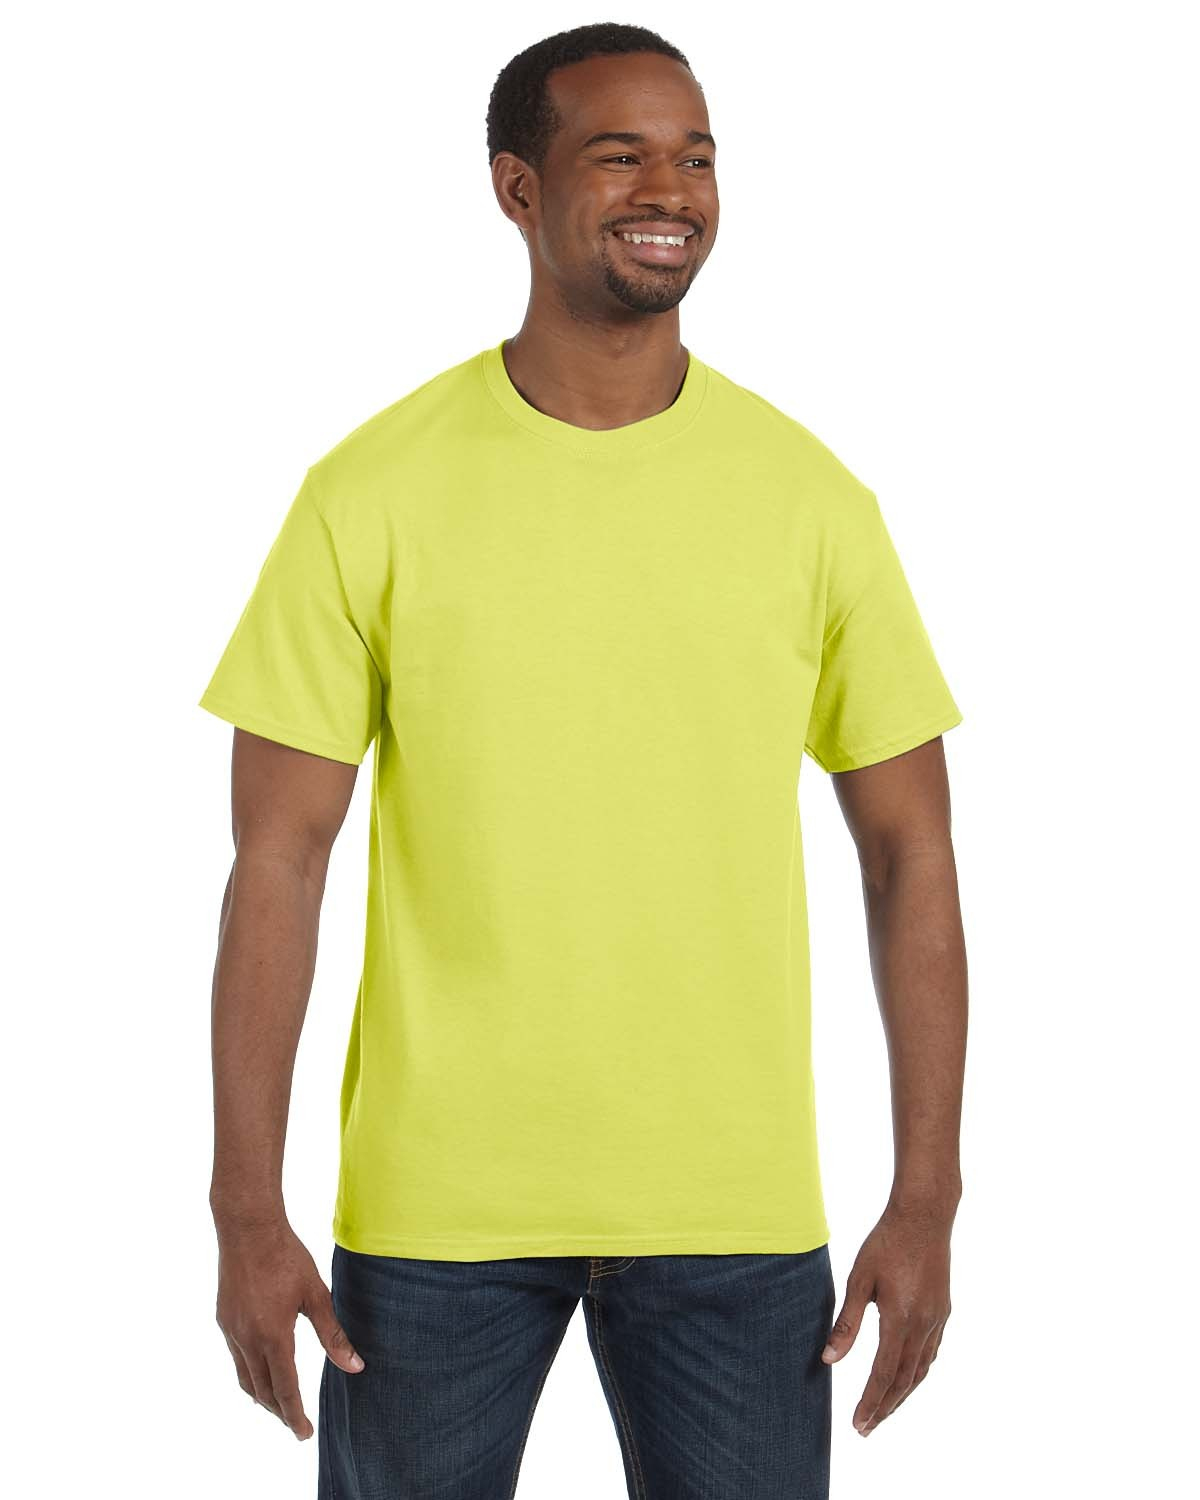 29MT Jerzees SAFETY GREEN